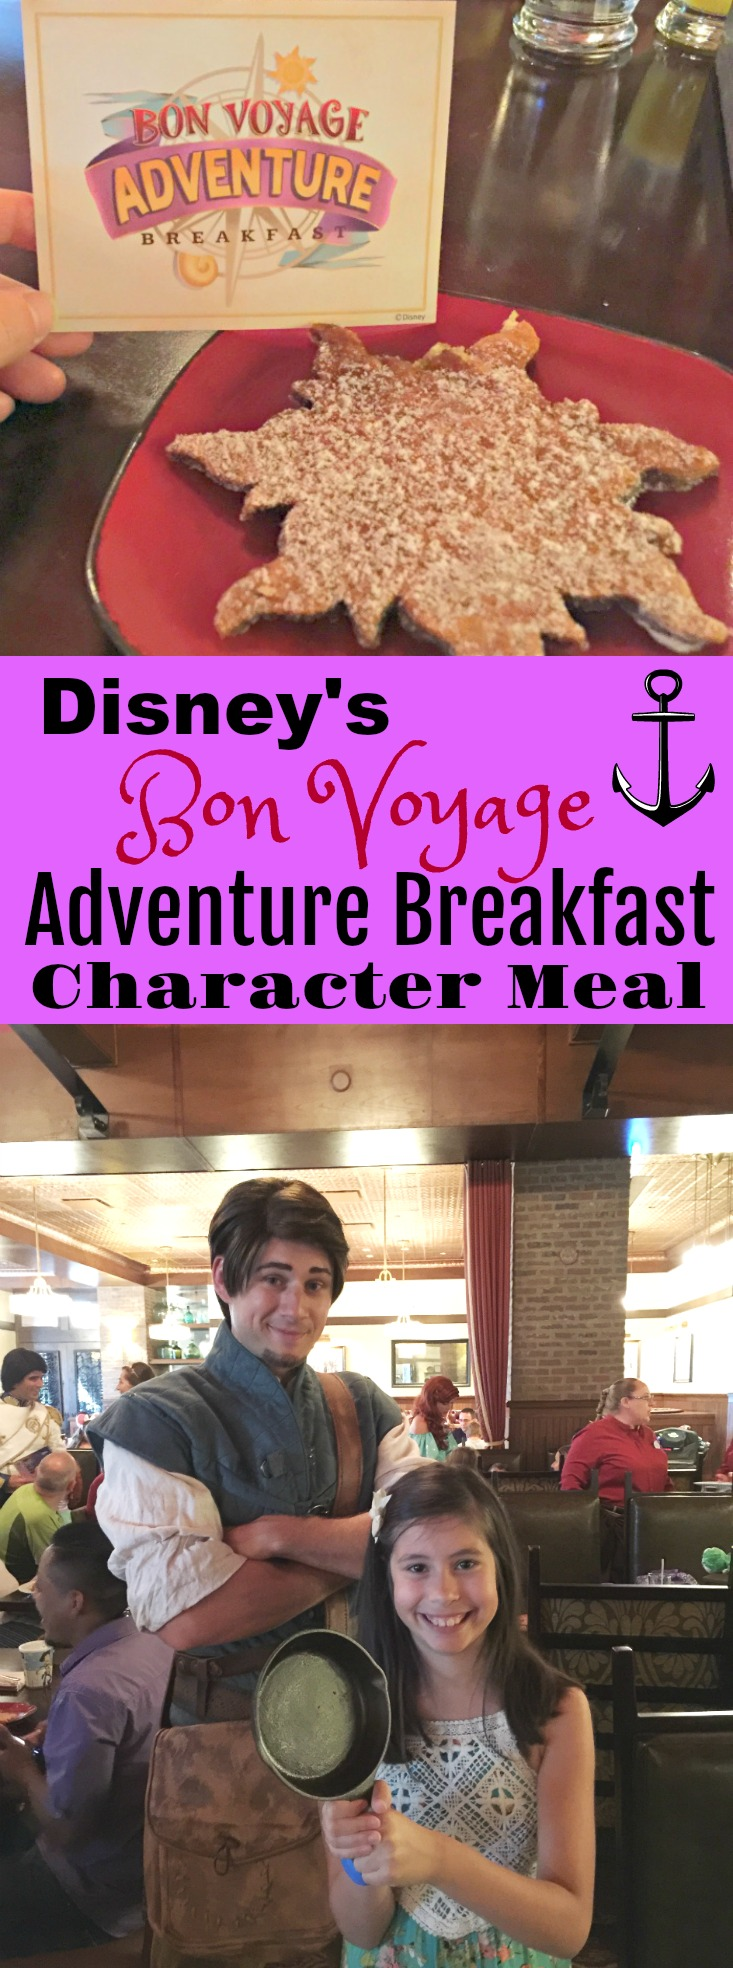 Disney's Bon Voyage Adventure Breakfast Character Meal - Our vacation experience and all the tips you need to know before you go to Disney World.